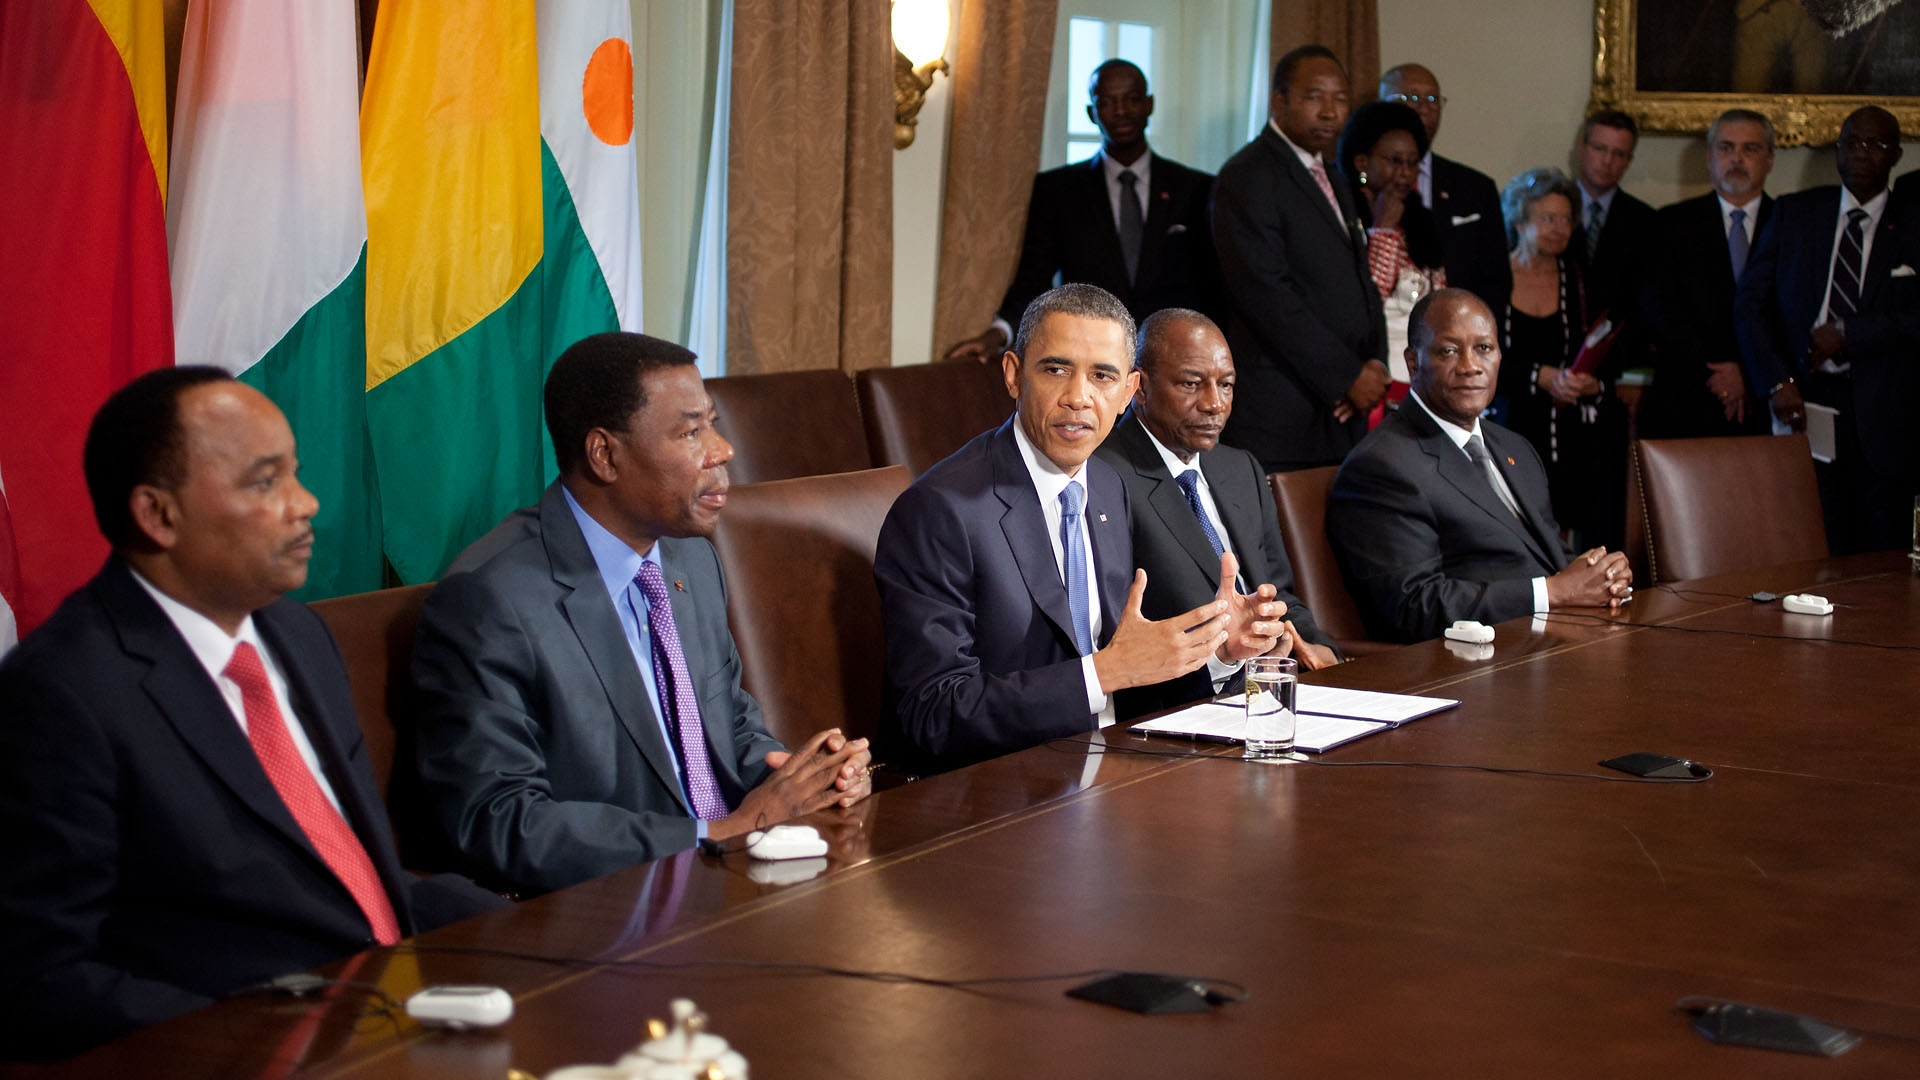 potus_with_african_leaders.jpg